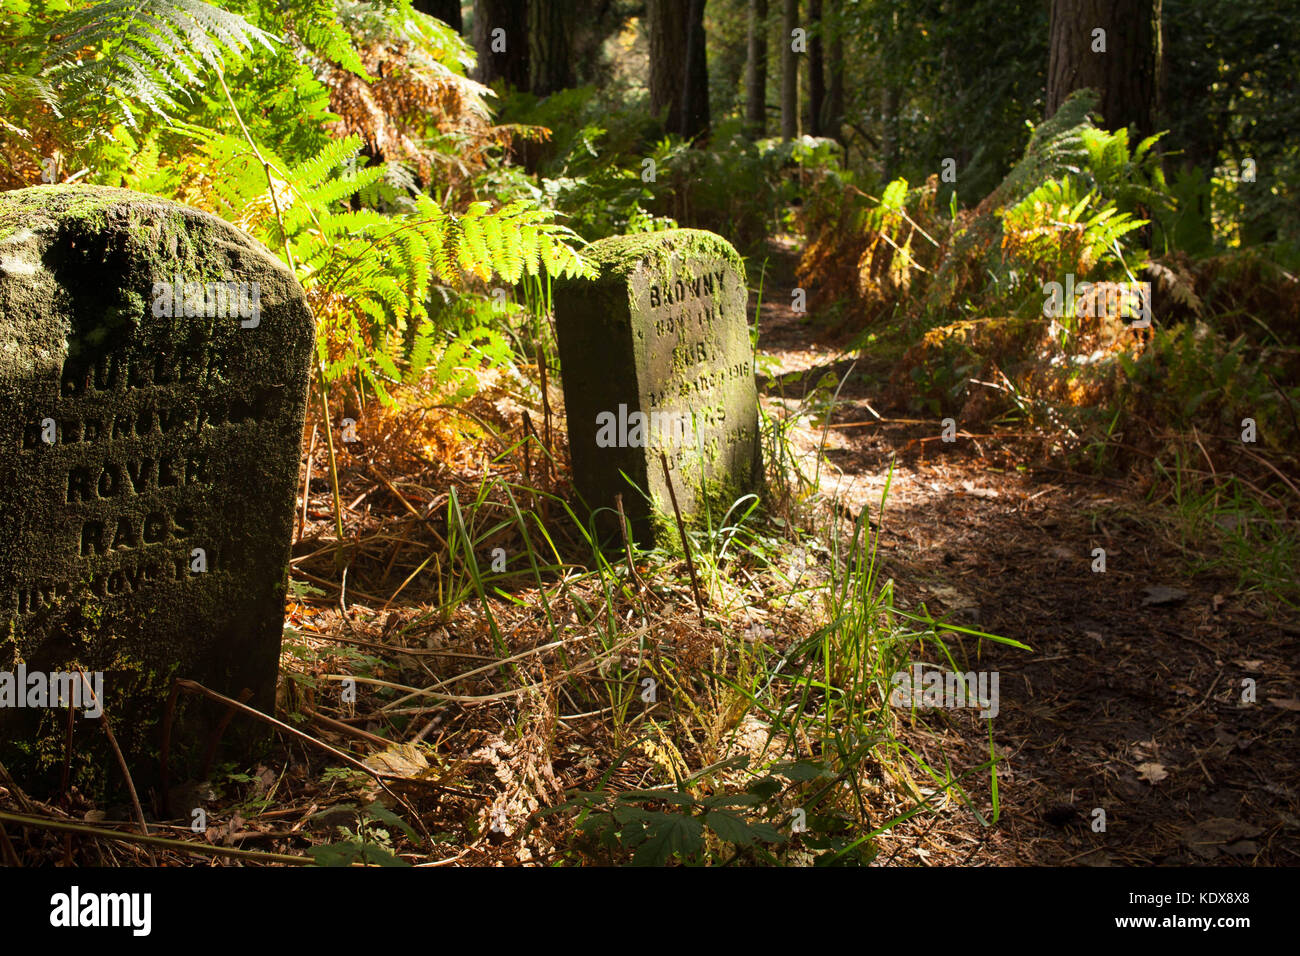 pets cematery, Colzium estate, Kilsyth, Scotland - Stock Image